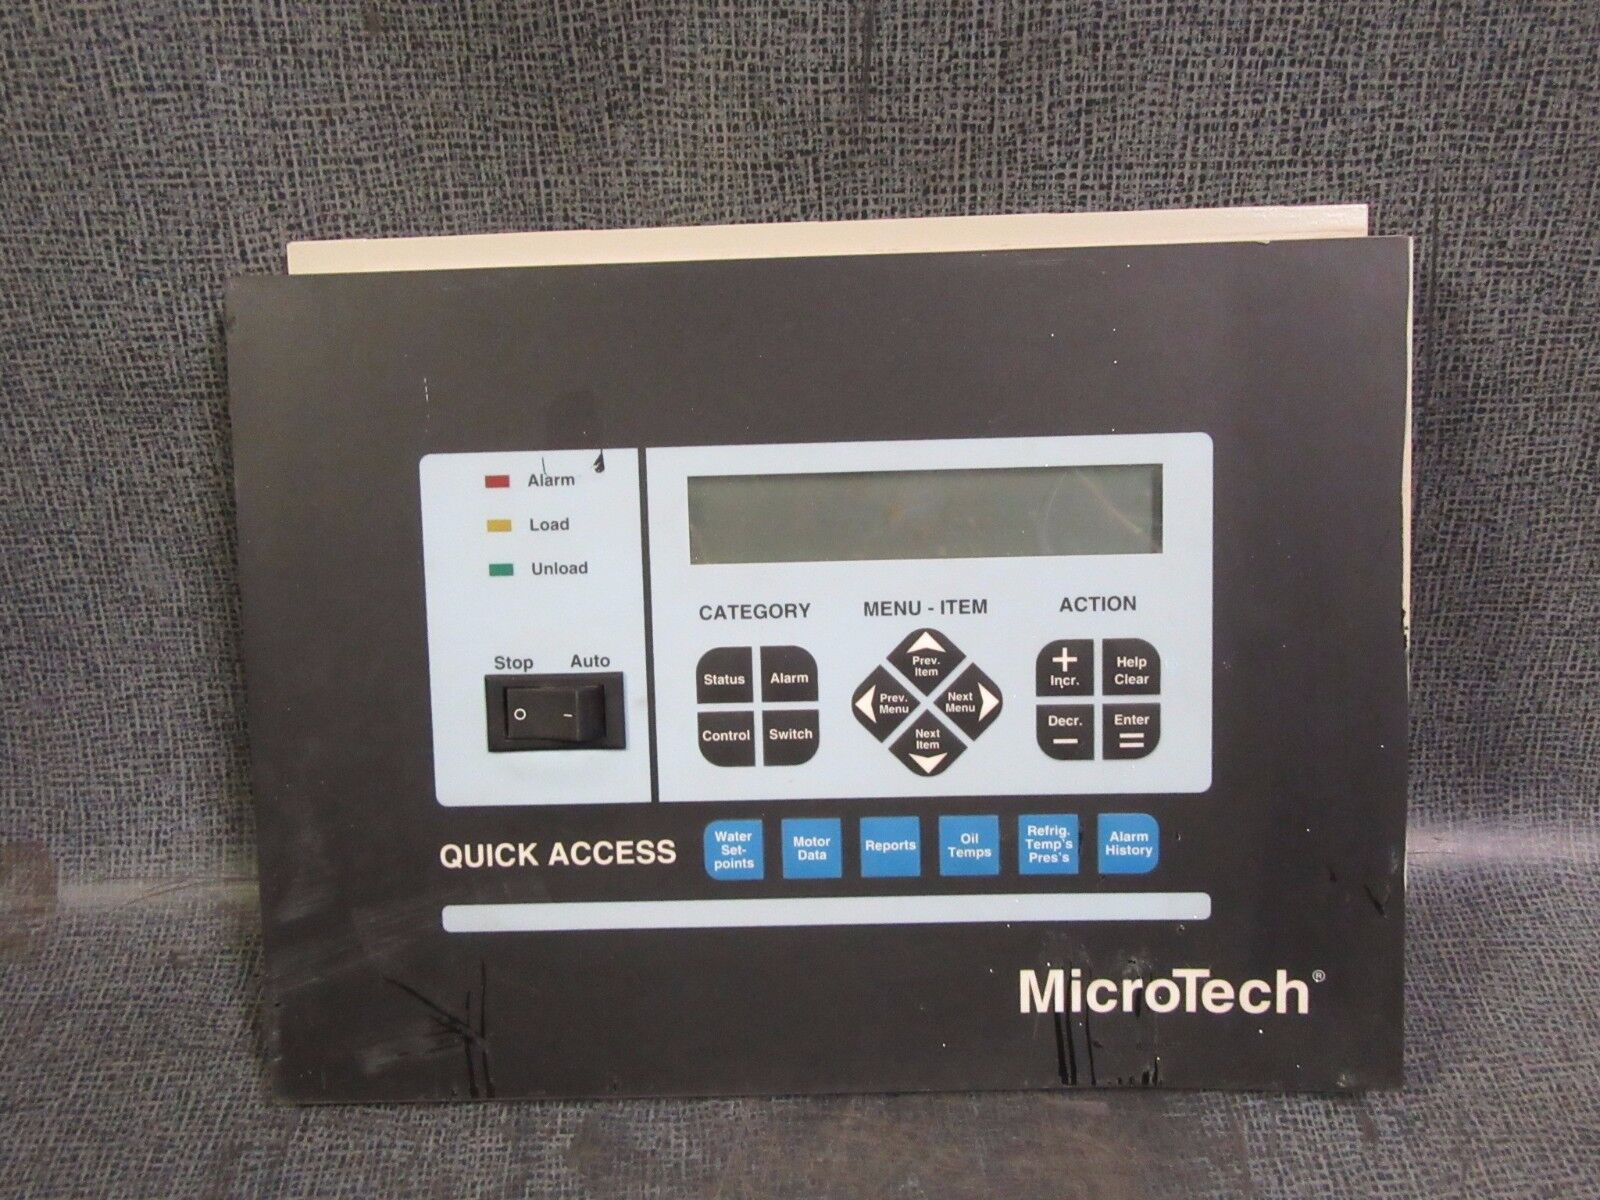 Mcquay chiller microtech quick access hmi display controller resntentobalflowflowcomponenttechnicalissues asfbconference2016 Images